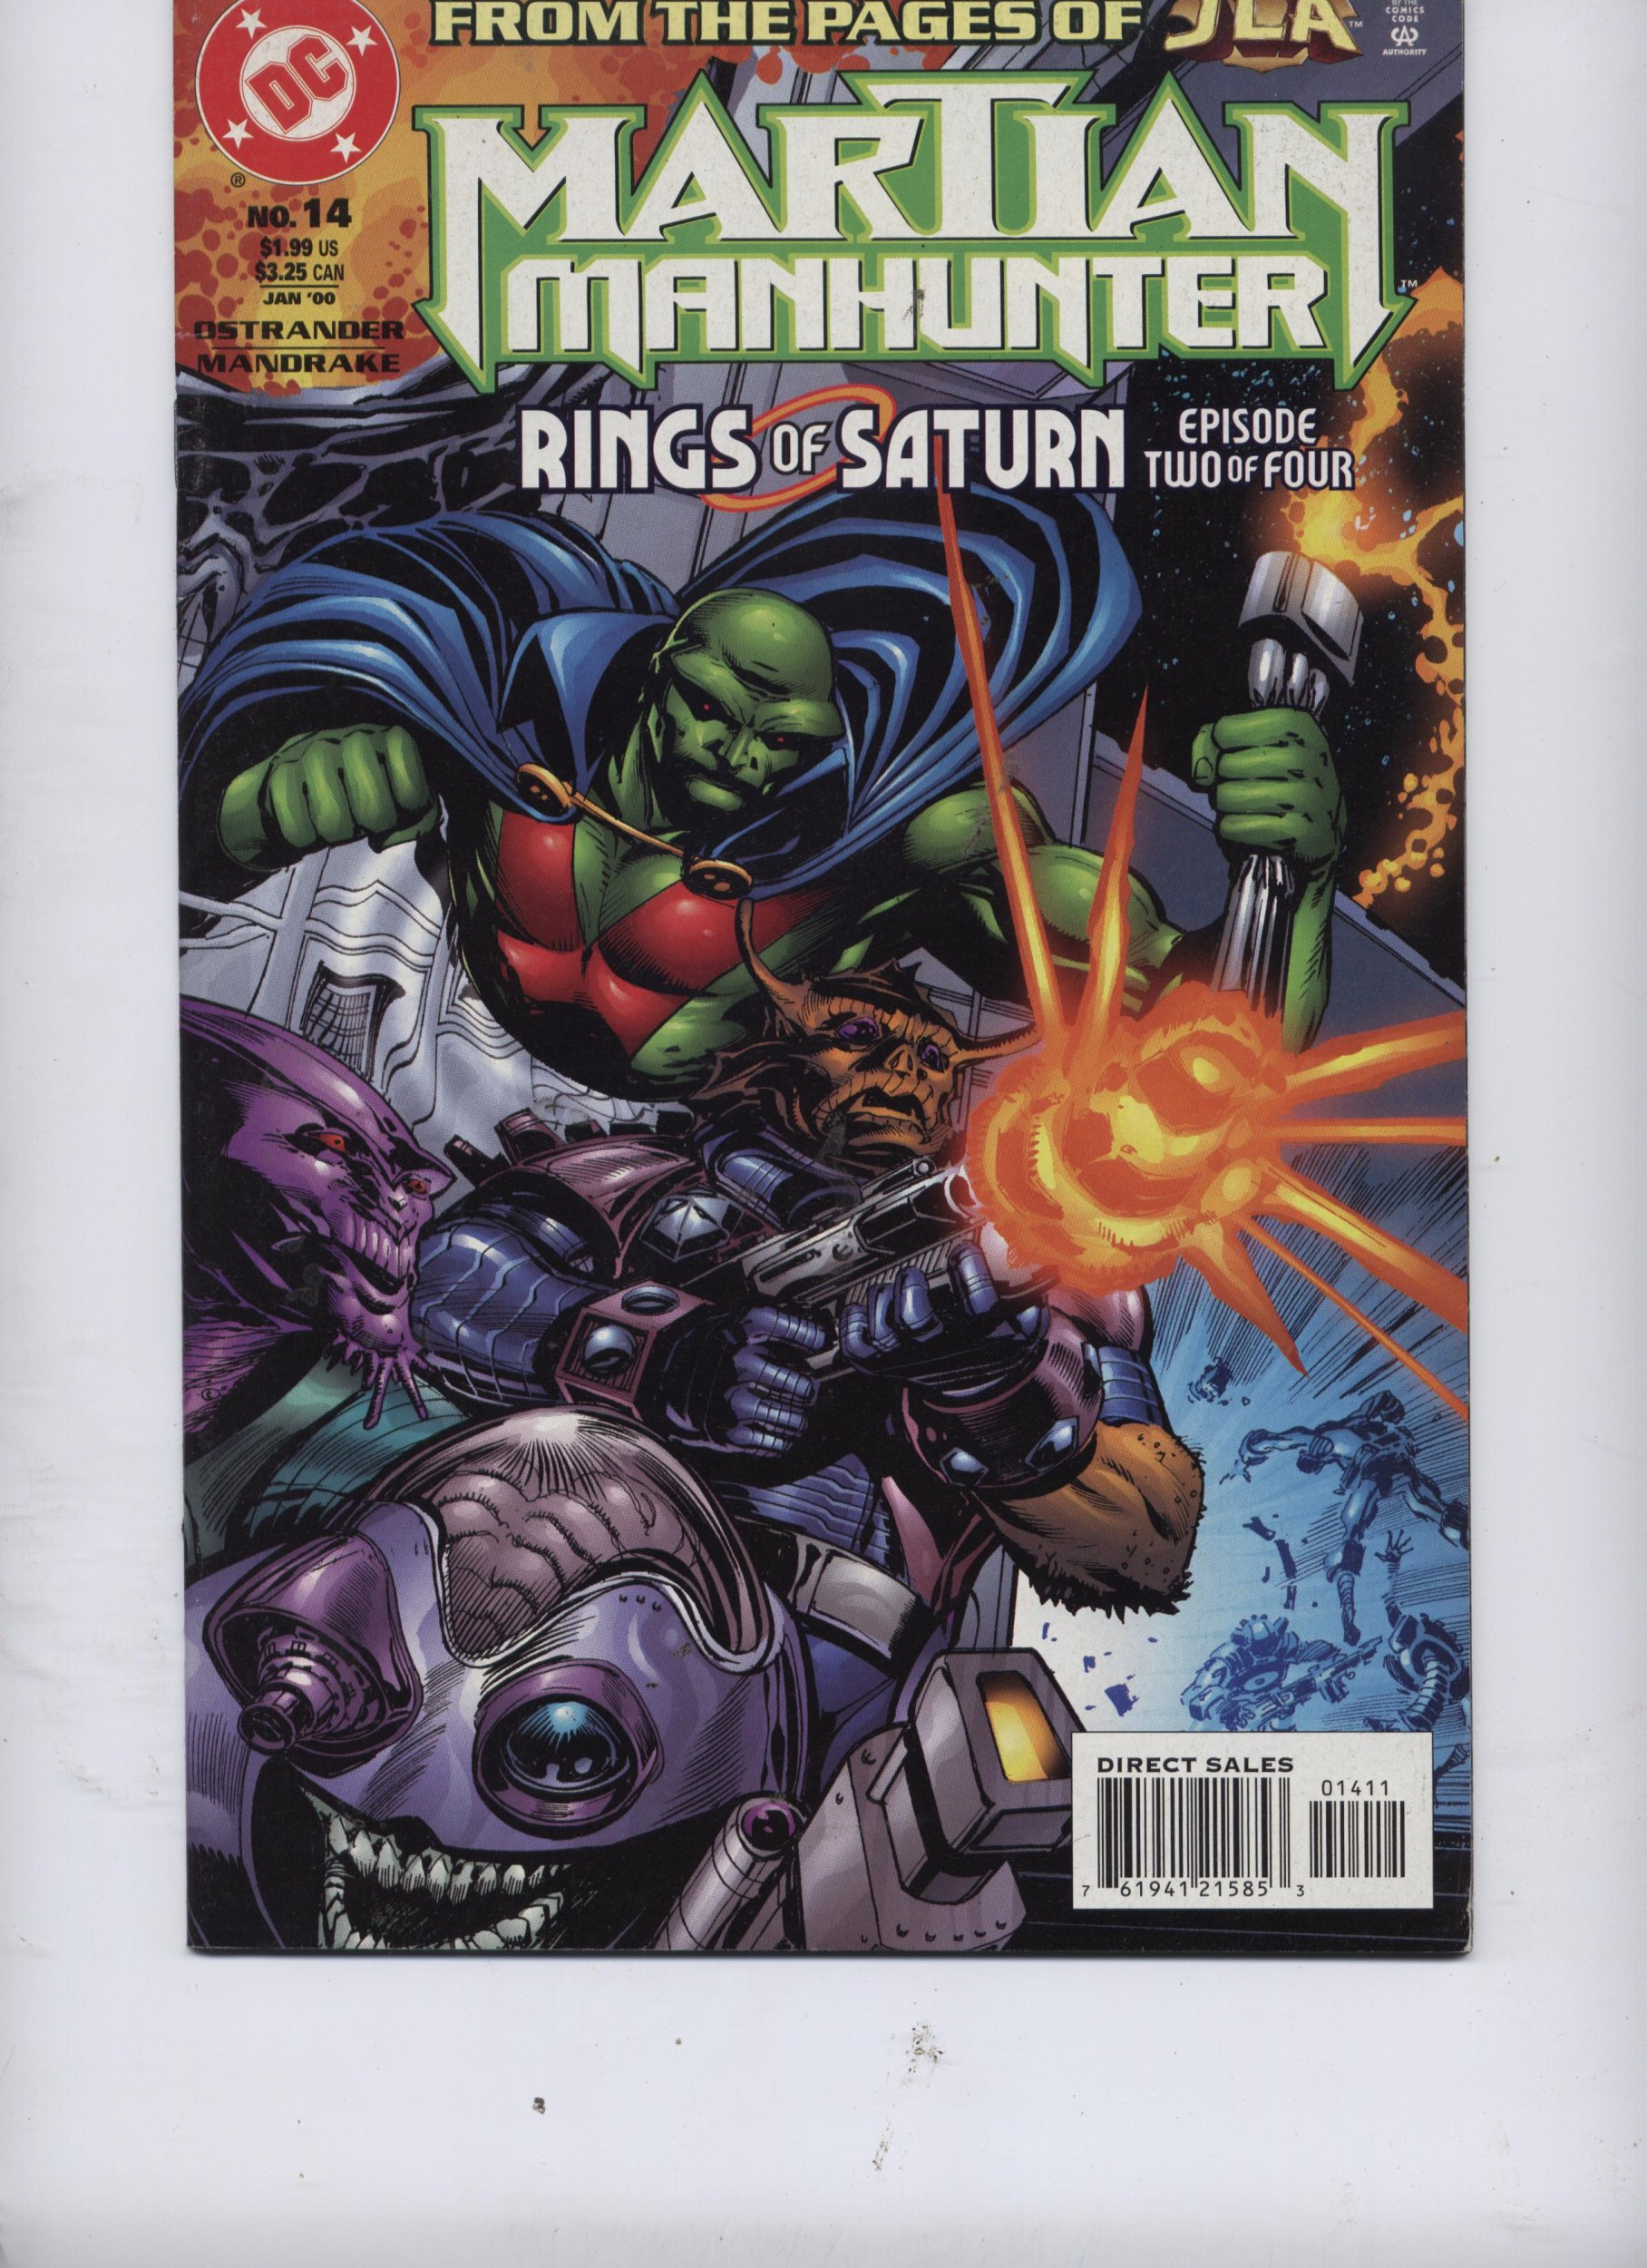 Download Martian Manhunter #14 (Rings of Saturn, Episode Two of Four) PDF